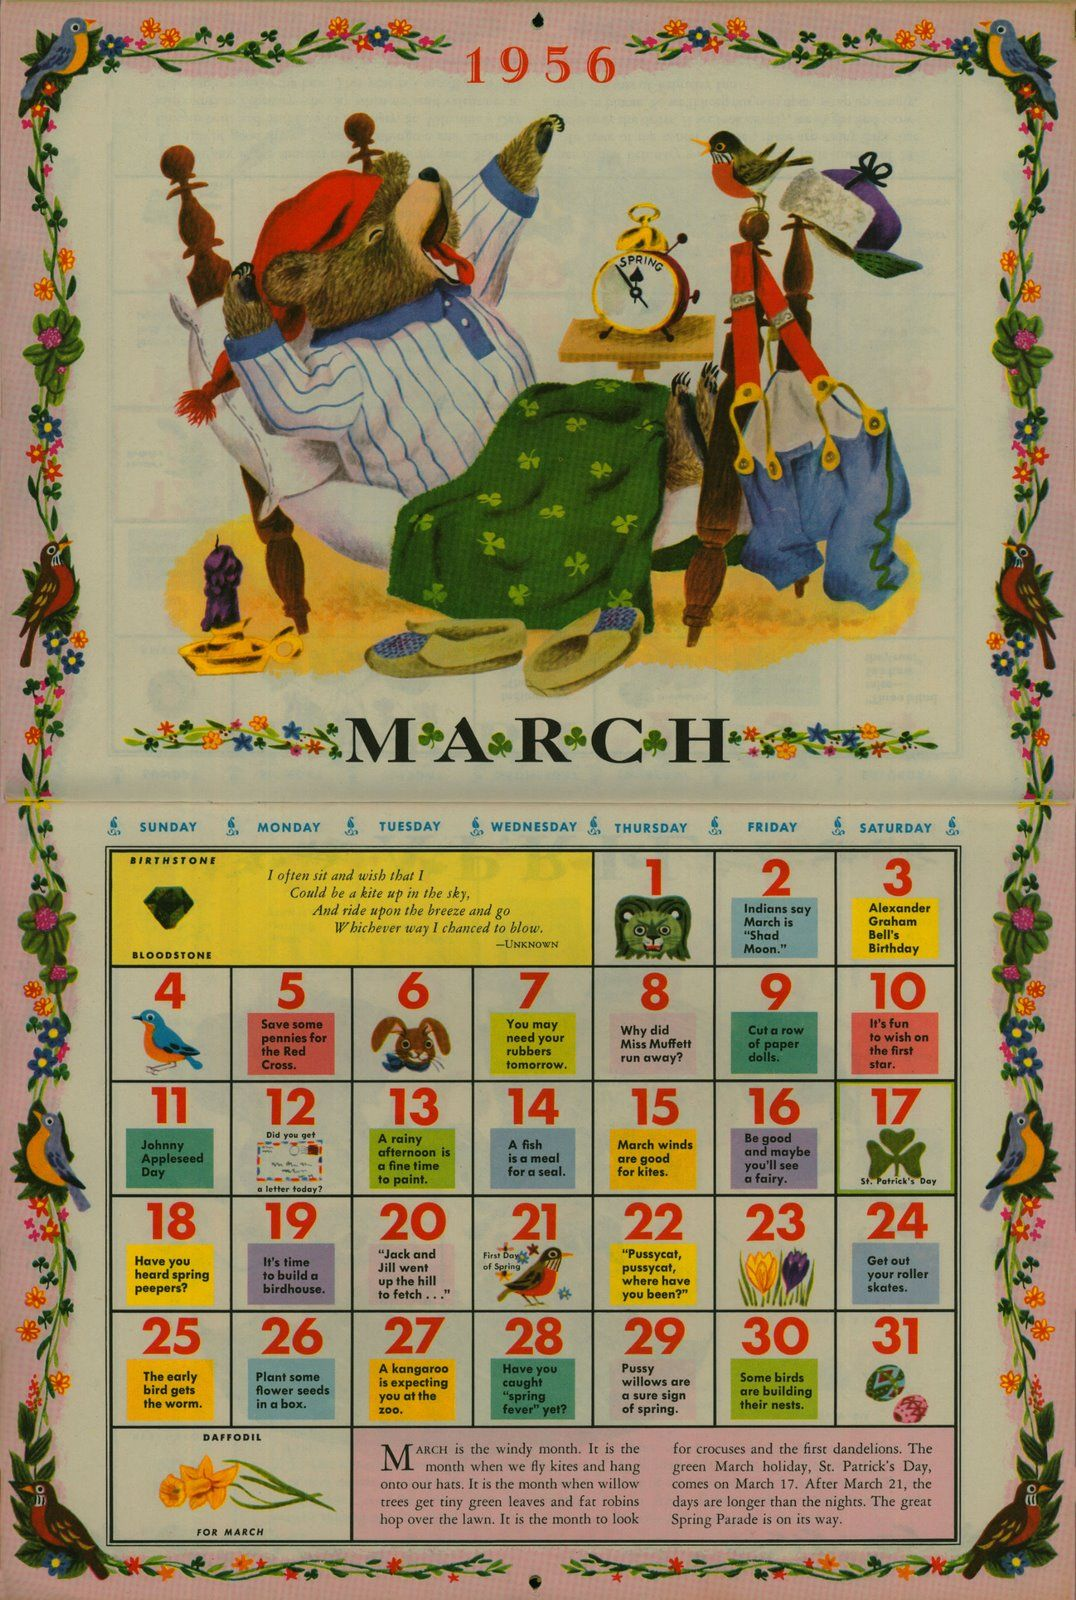 Calendar Illustration Board : Richard scarry march illustration from quot the golden